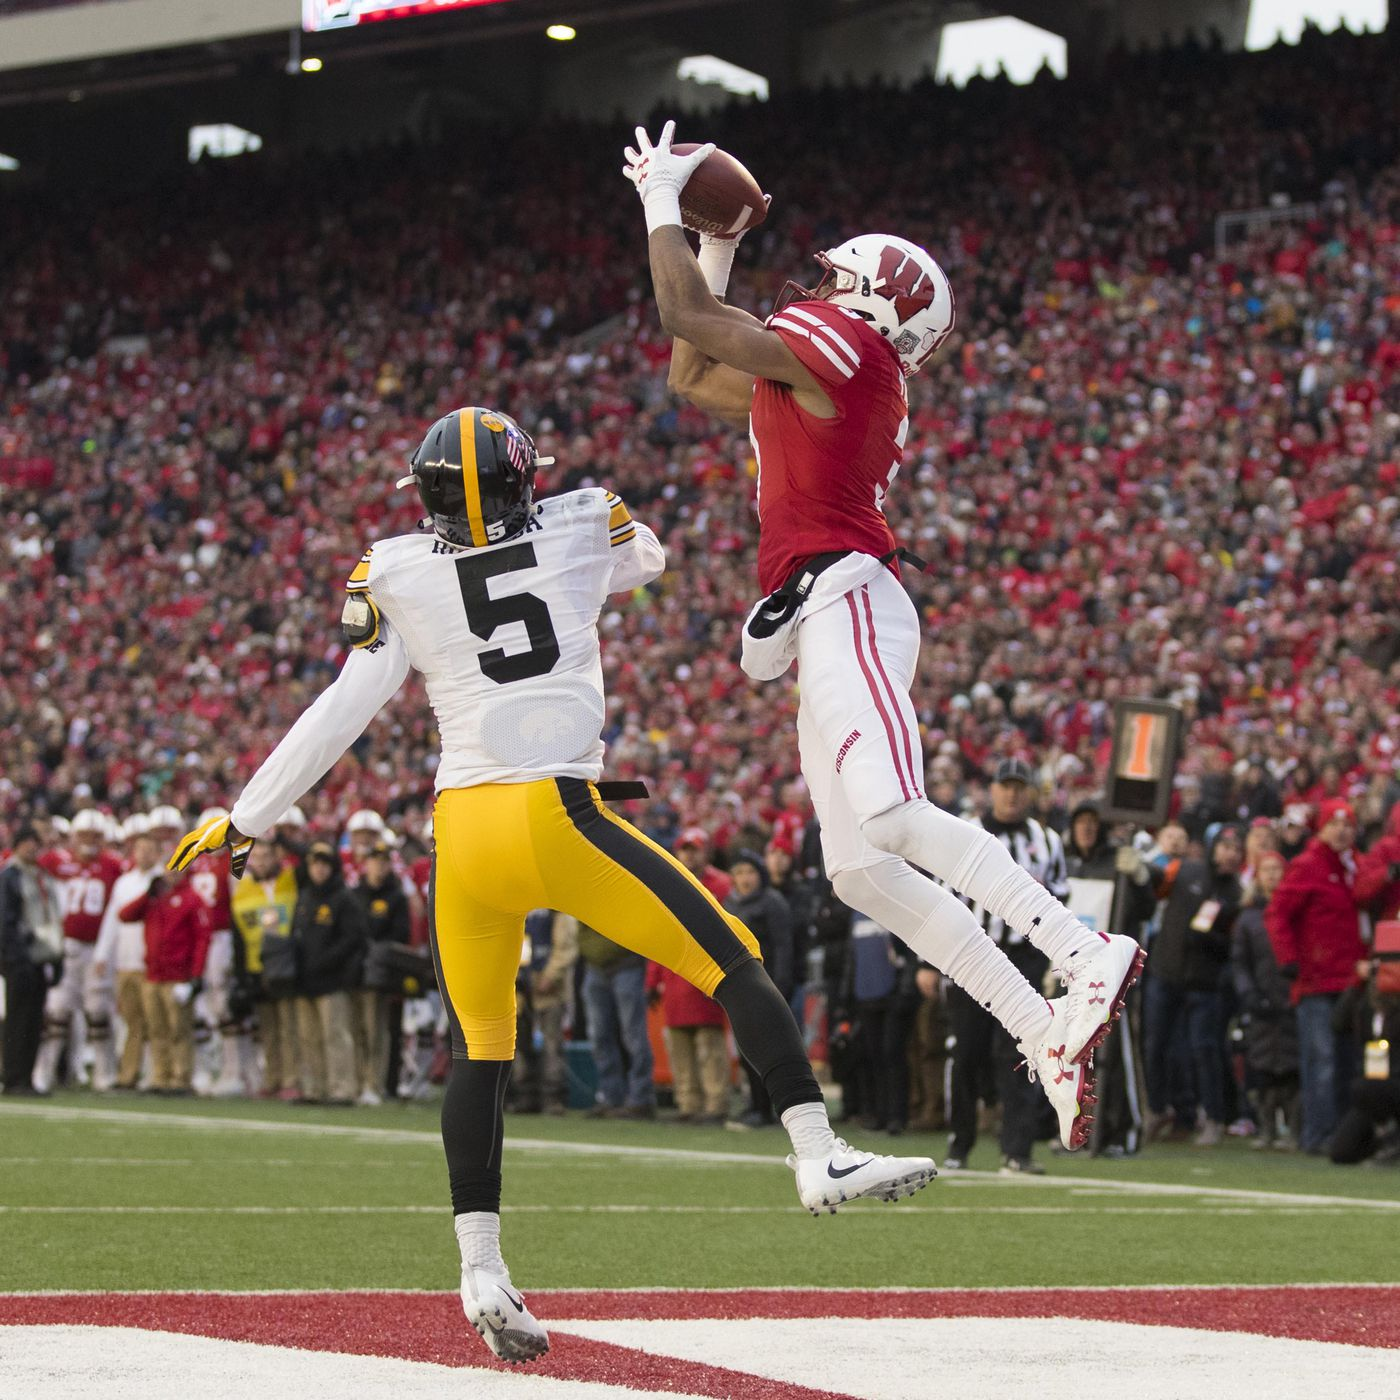 Wisconsin 38 Iowa 14 Back to reality Black Heart Gold Pants